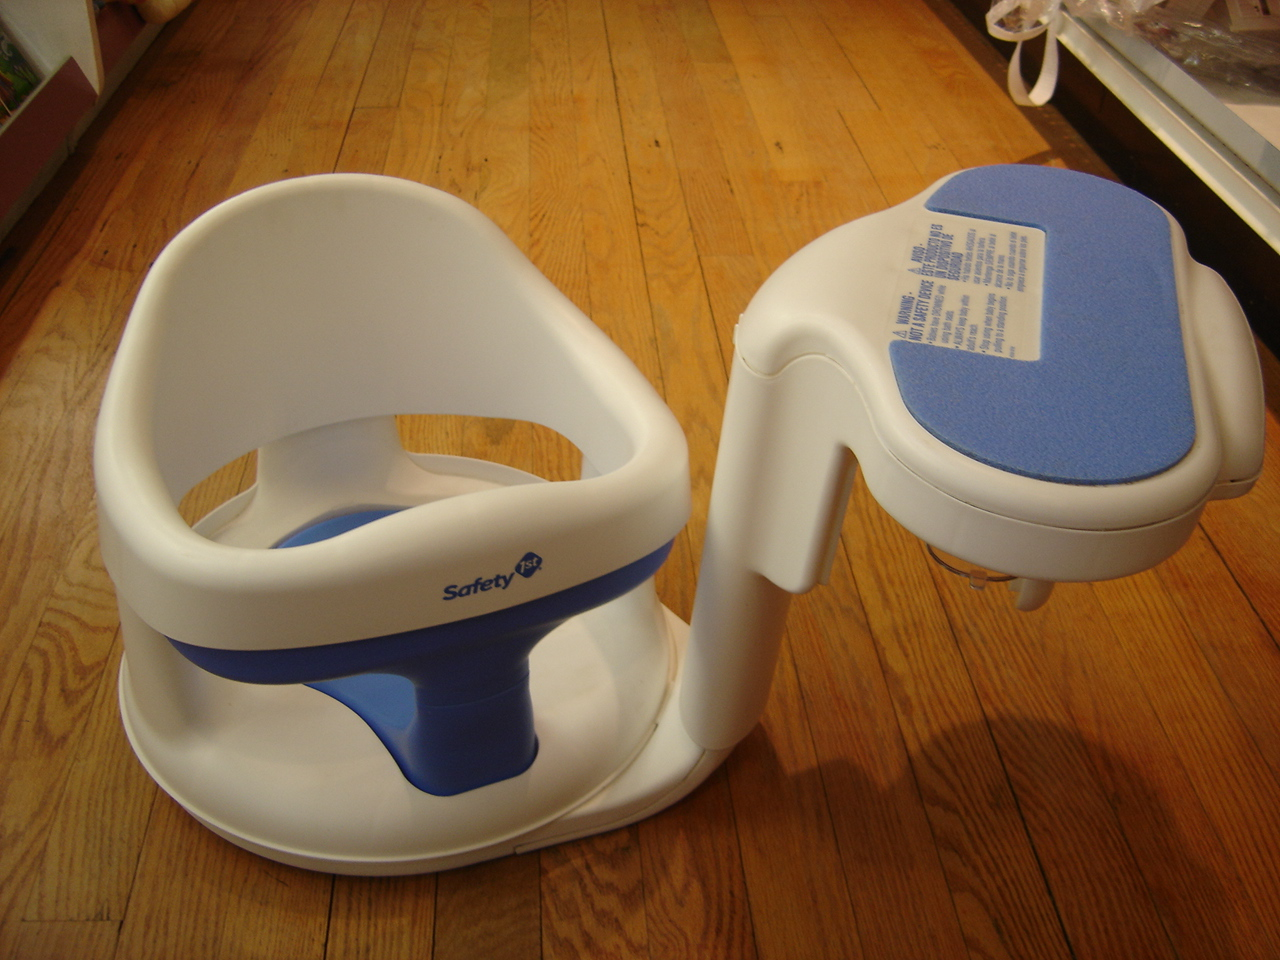 Famous Safety 1st Swivel Baby Bath Seat Contemporary - Bathtub for ...